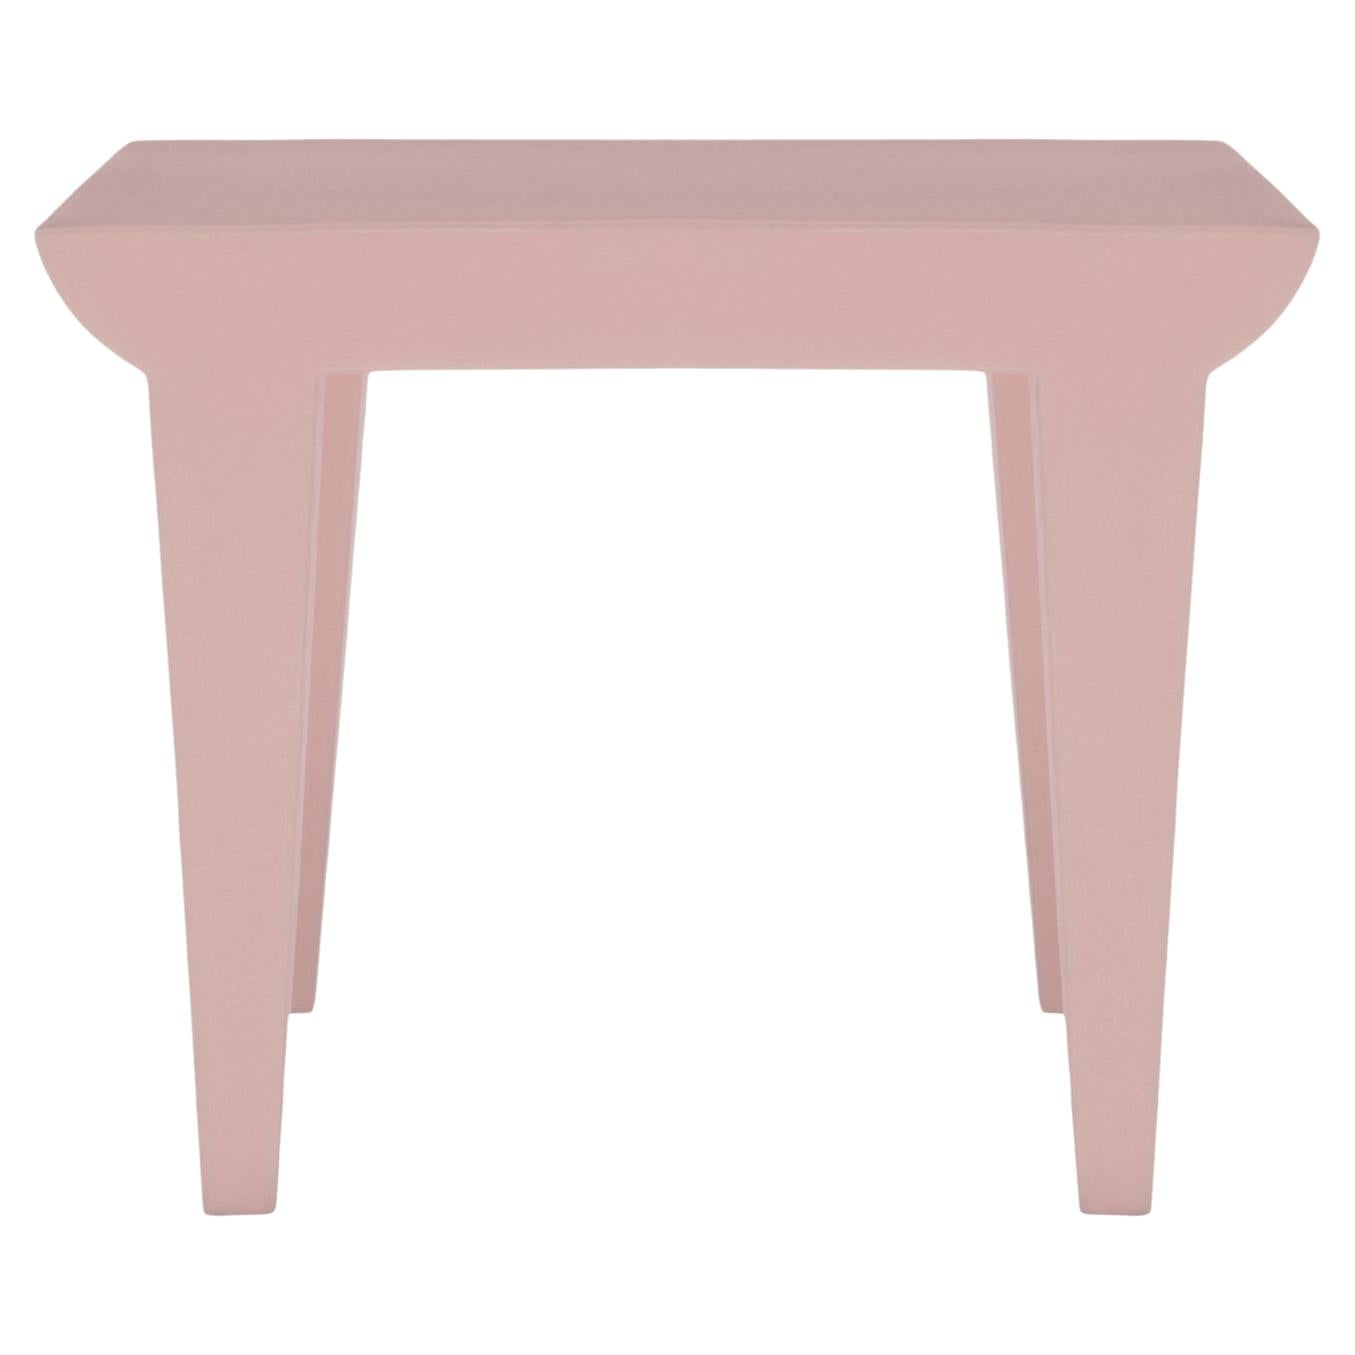 Kartell Bubble Club Side Table in Powder by Philippe Starck